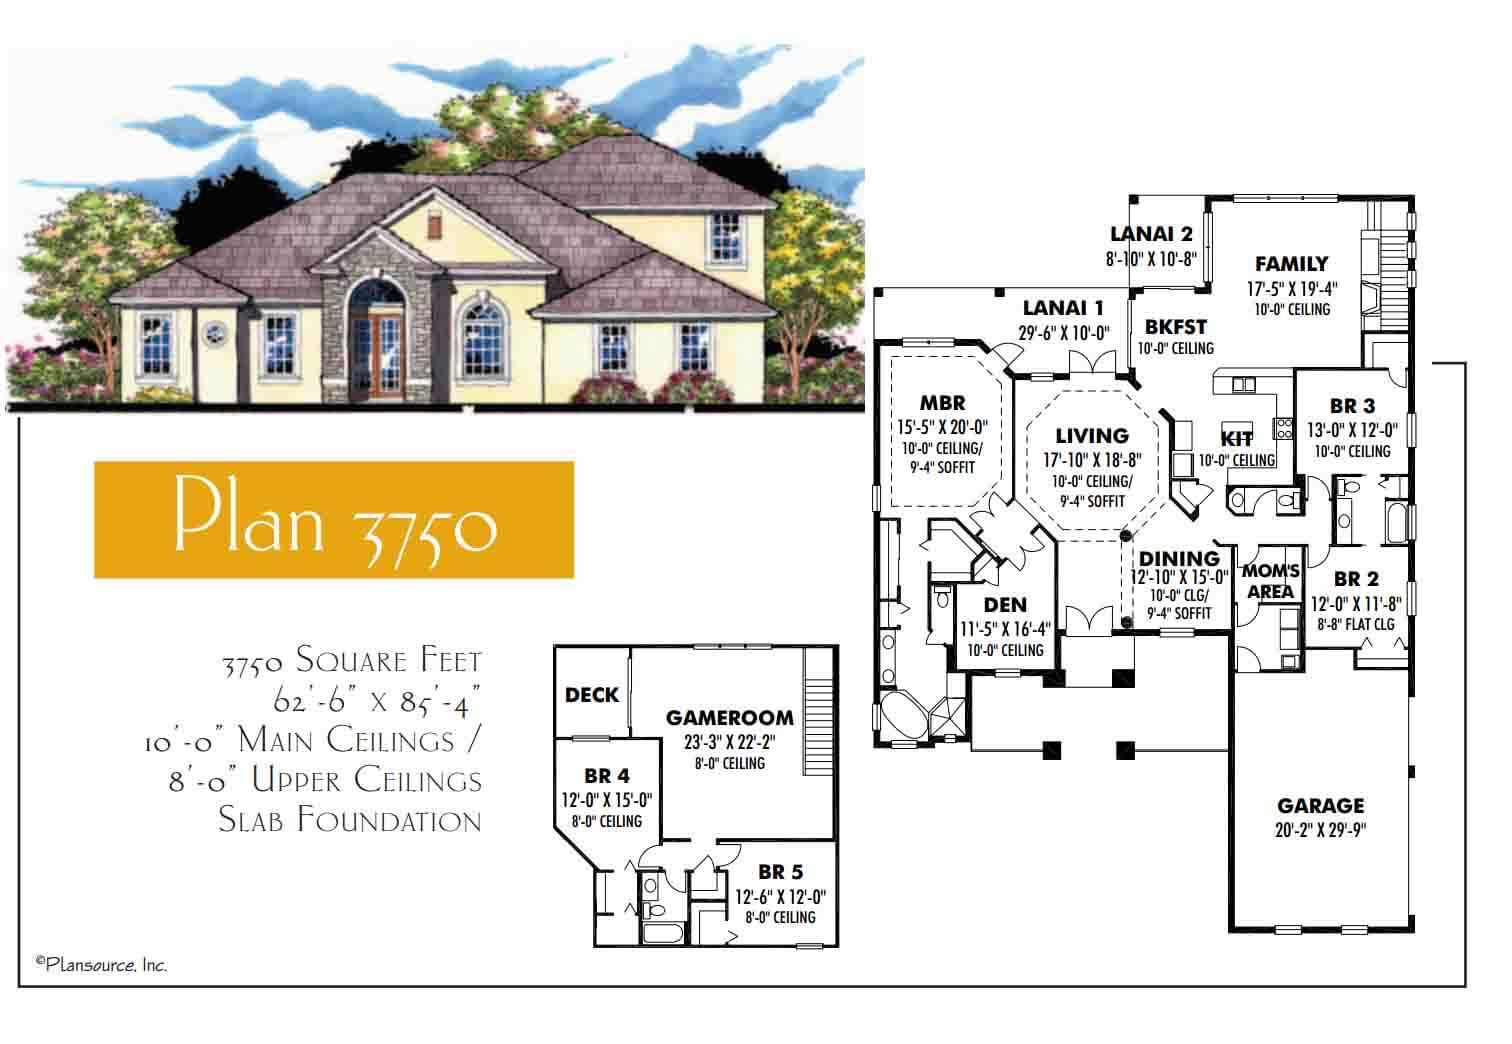 Floor Plans,3,501 SQ FT TO 4,000 SQ FT,1104